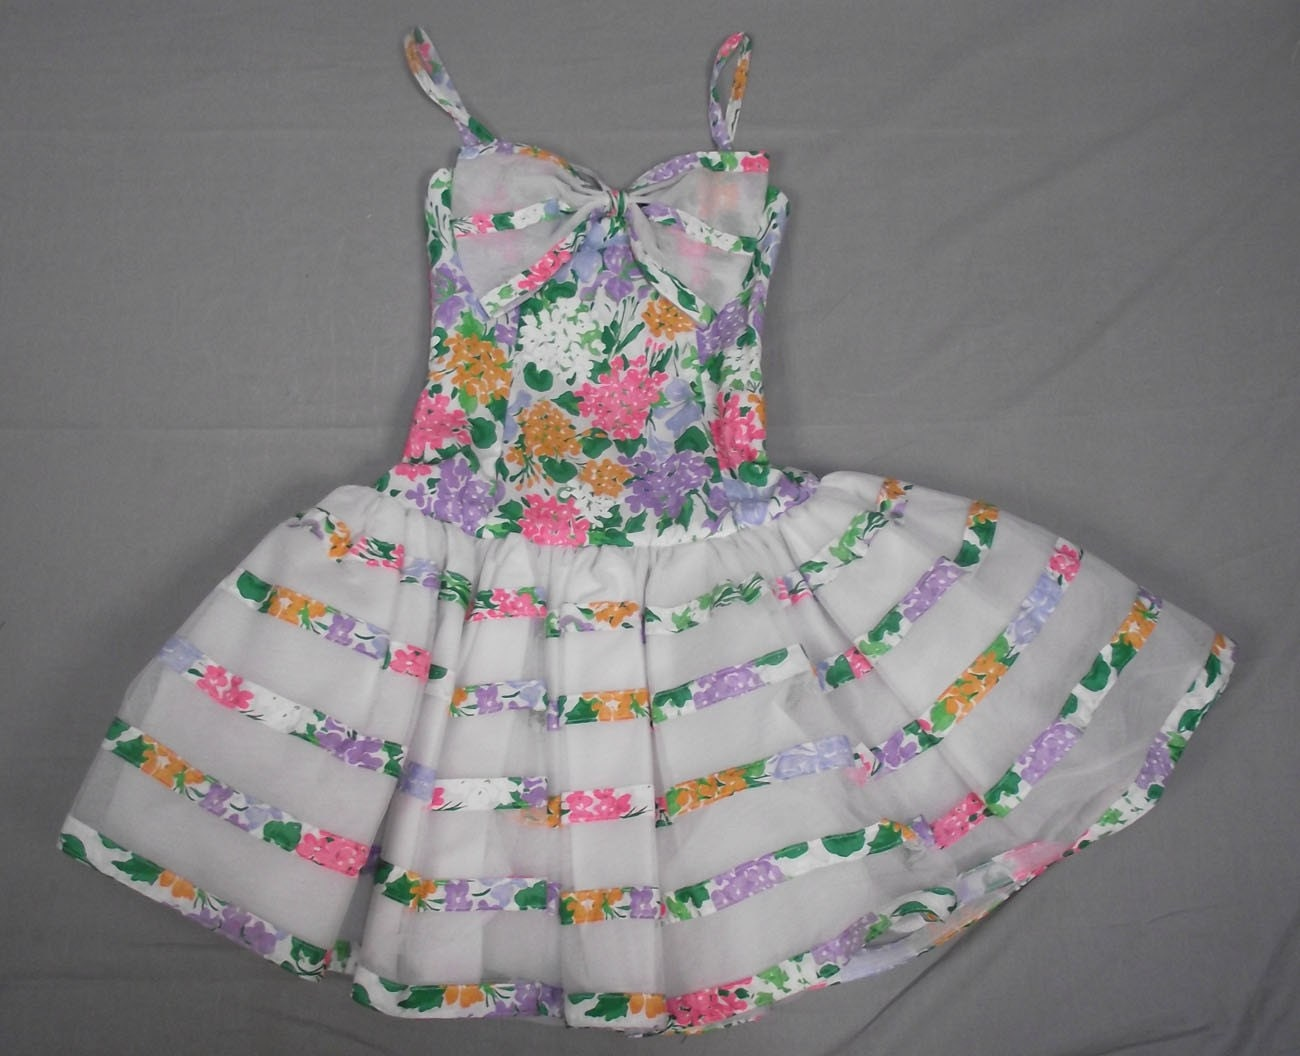 RIDICULOUS SALE Vintage 80s Pouf Skirt Dress with a Bouquet of Spring Flowers and an Oversize Bow Size Small to Medium